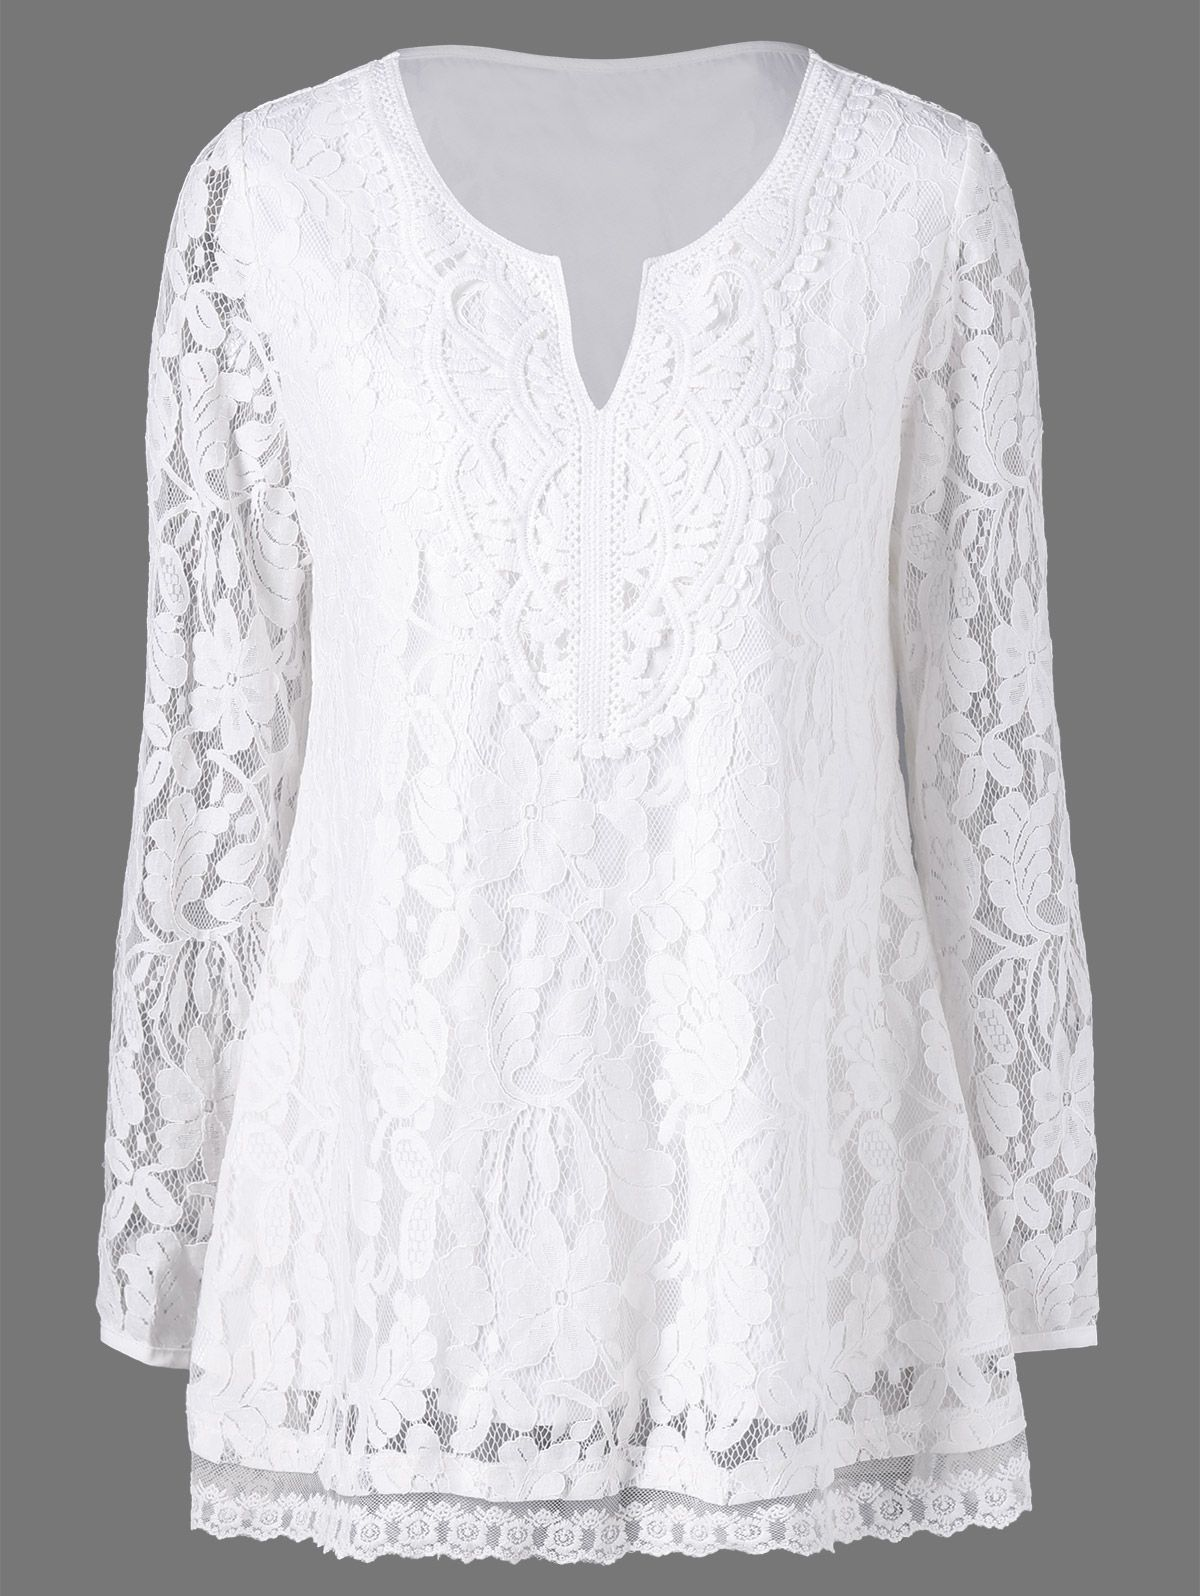 2afb4c3a57f9 Split-Neck Floral Lace Blouse | Tees & T-Shirts in 2019 | Blouse ...